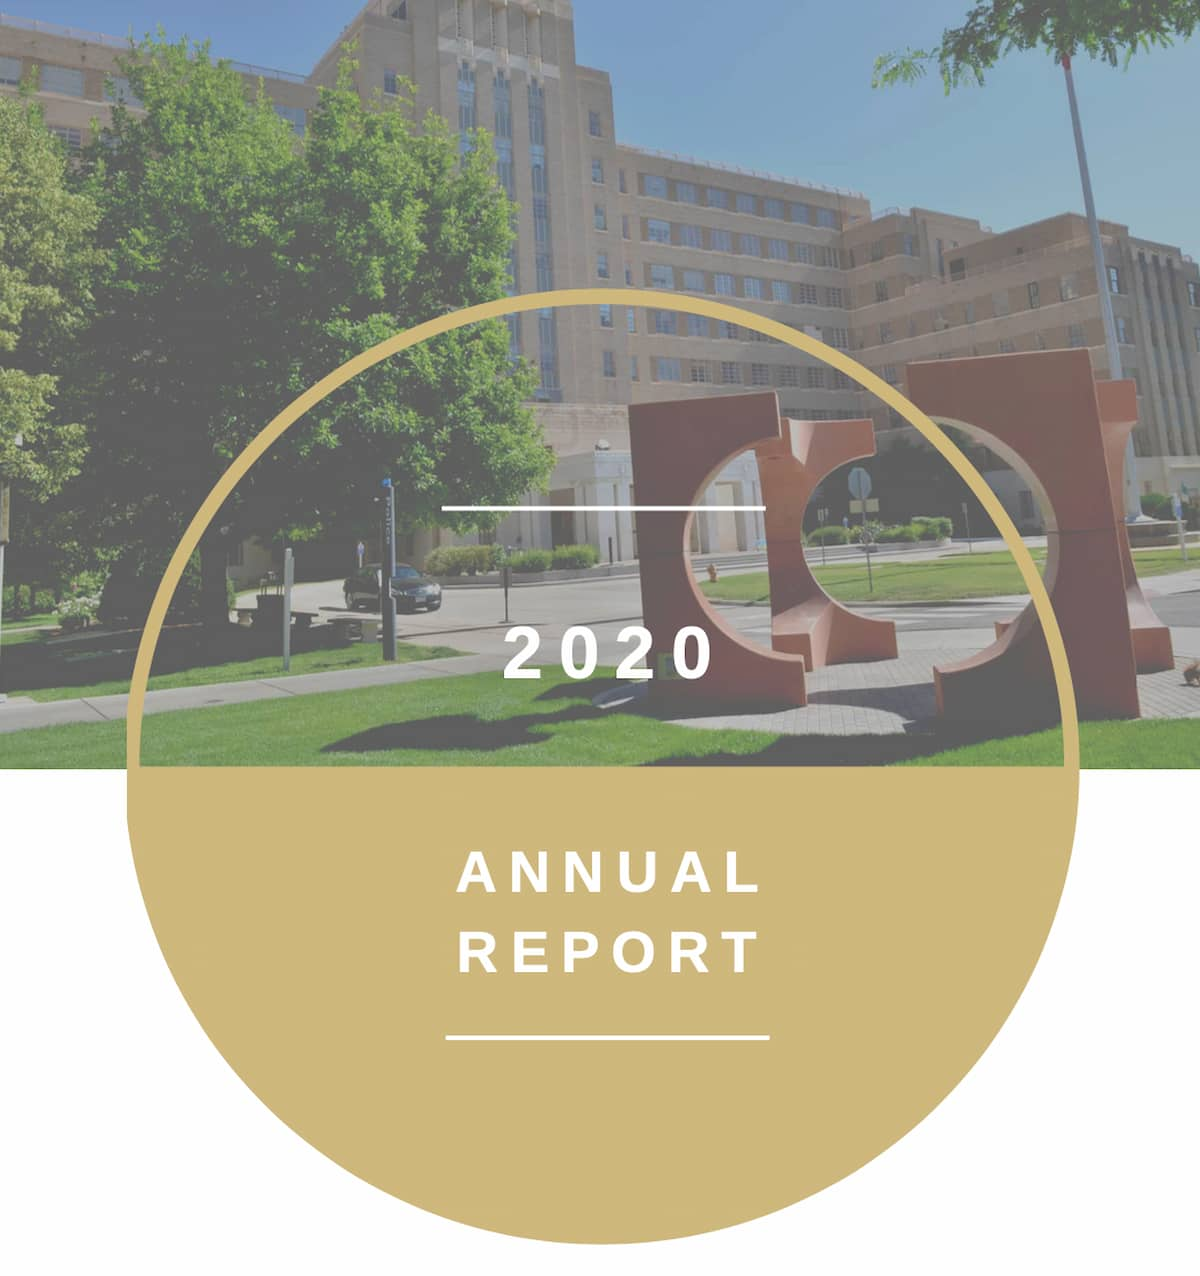 """""""2020 Annual Report"""" with CU Anschutz campus in the background"""